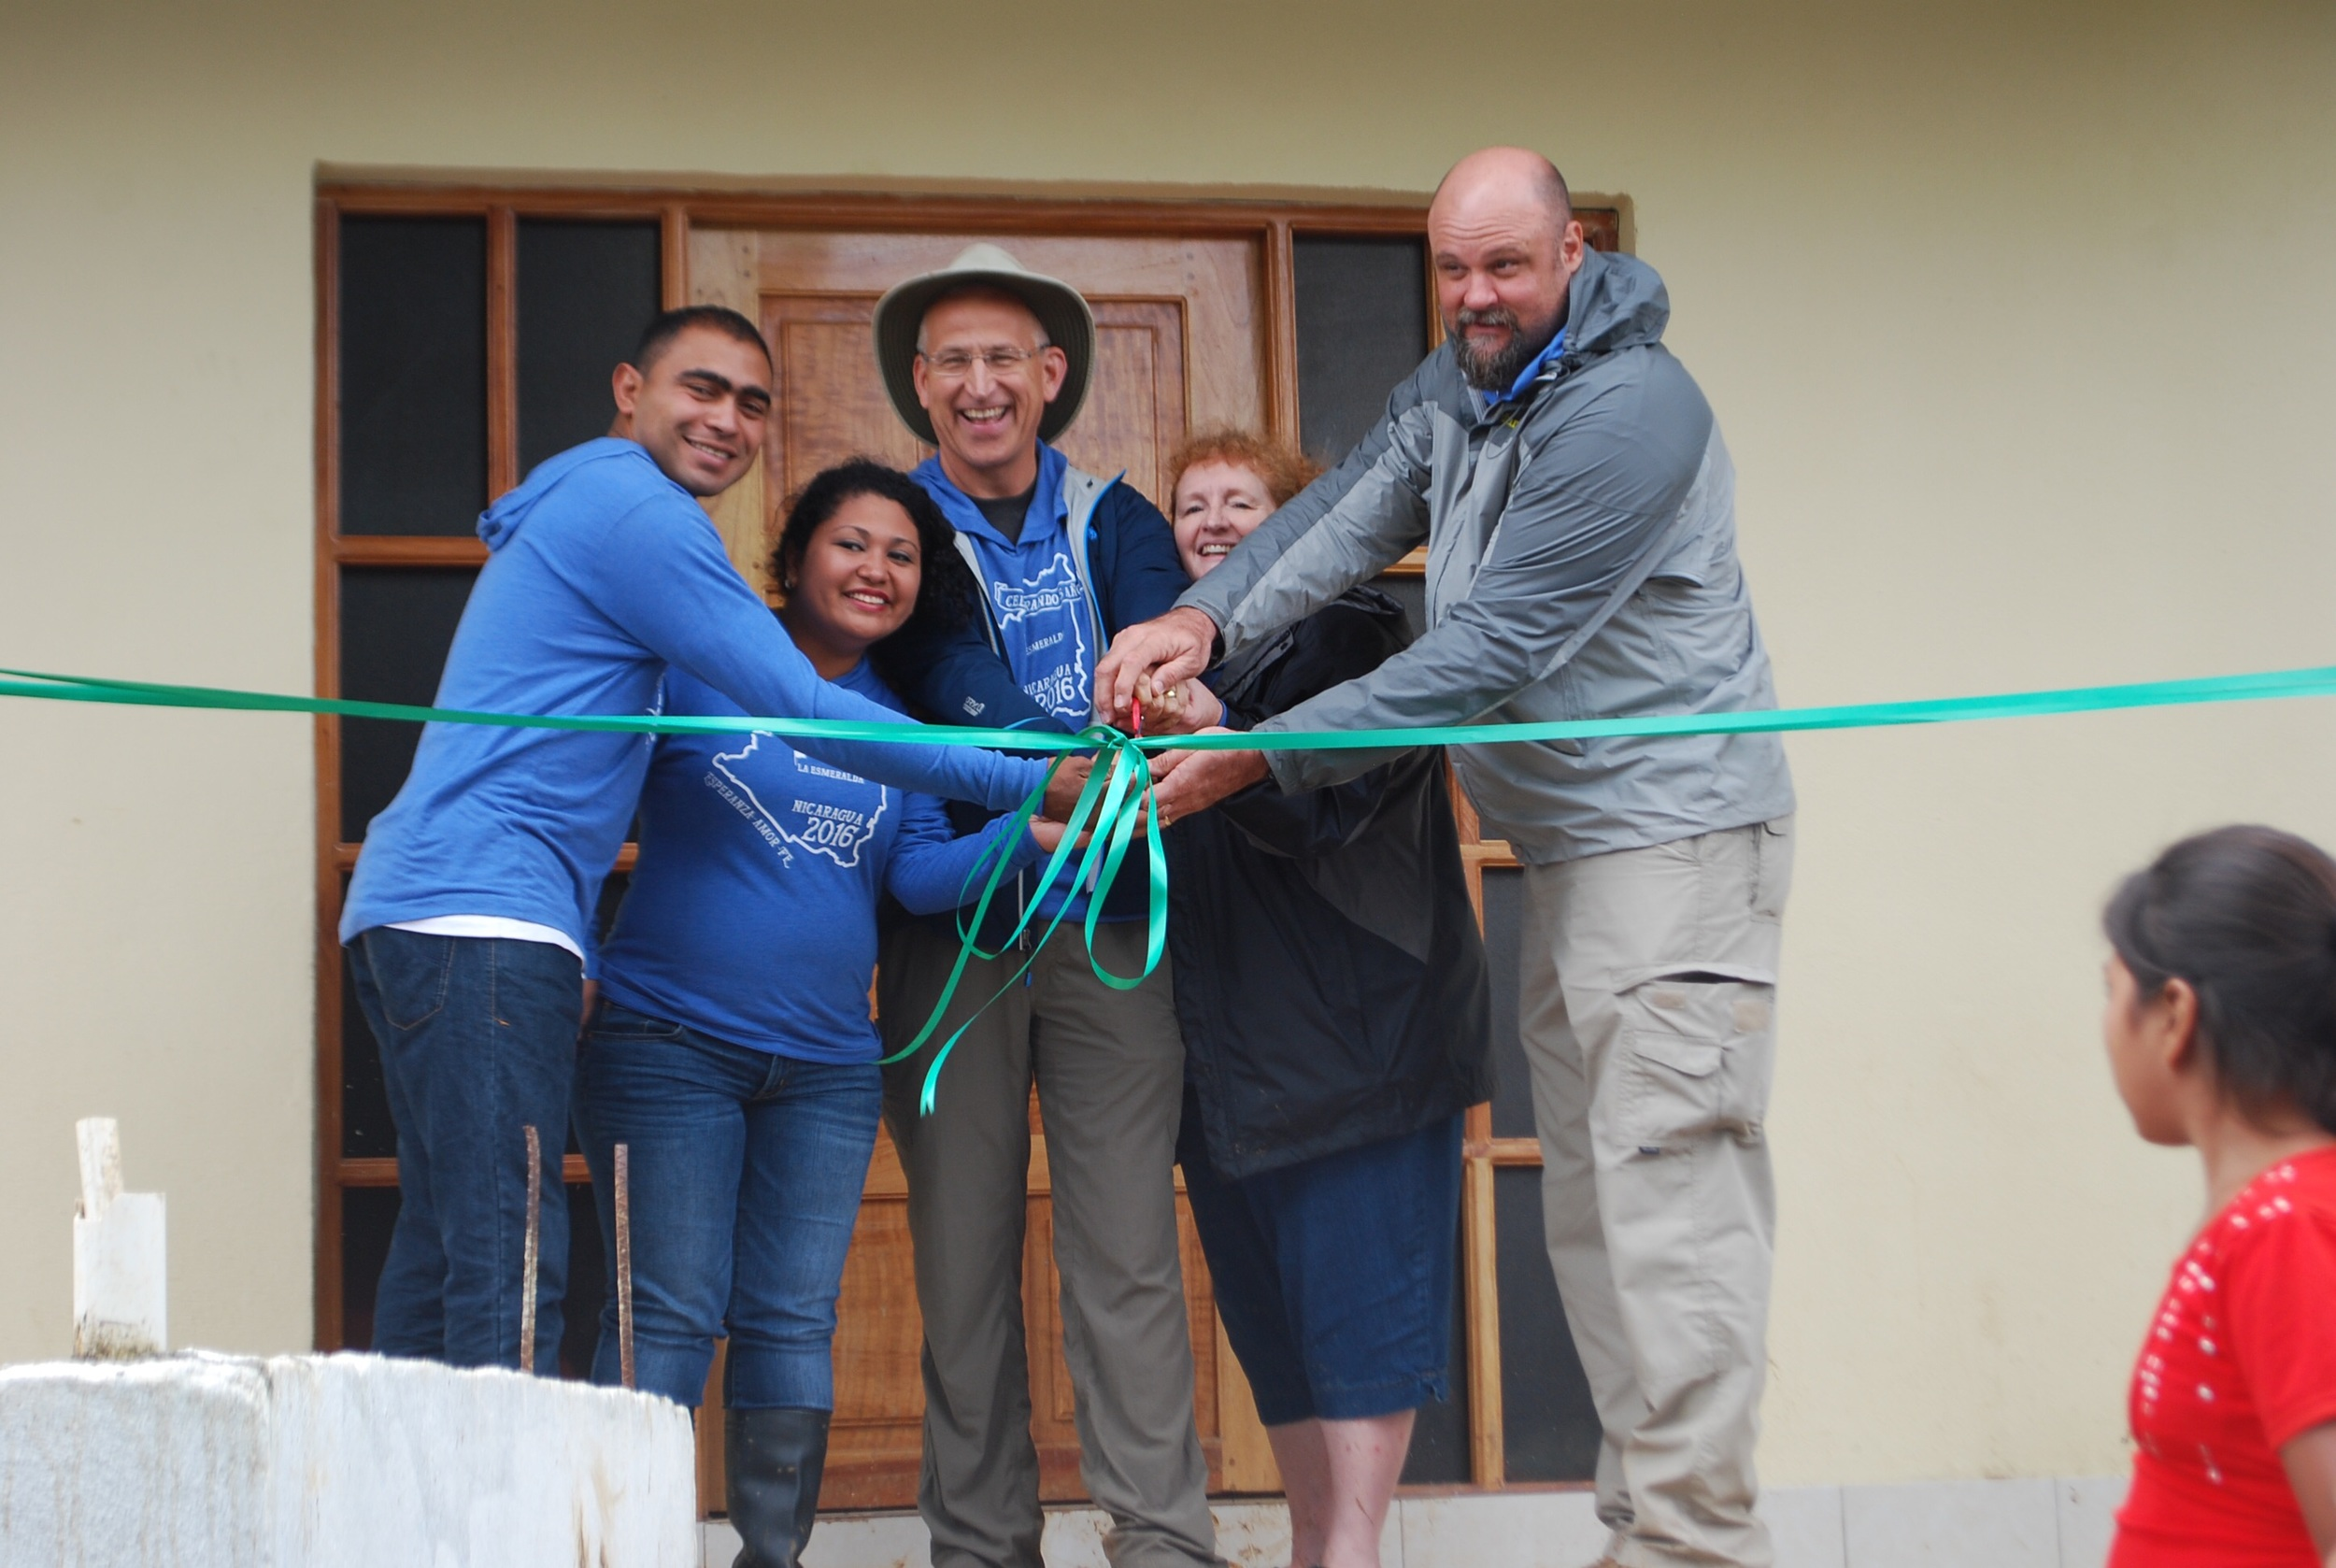 In the afternoon we dedicated the doctor's house with Pastor Denis, Karen and missionary Brian Weed.